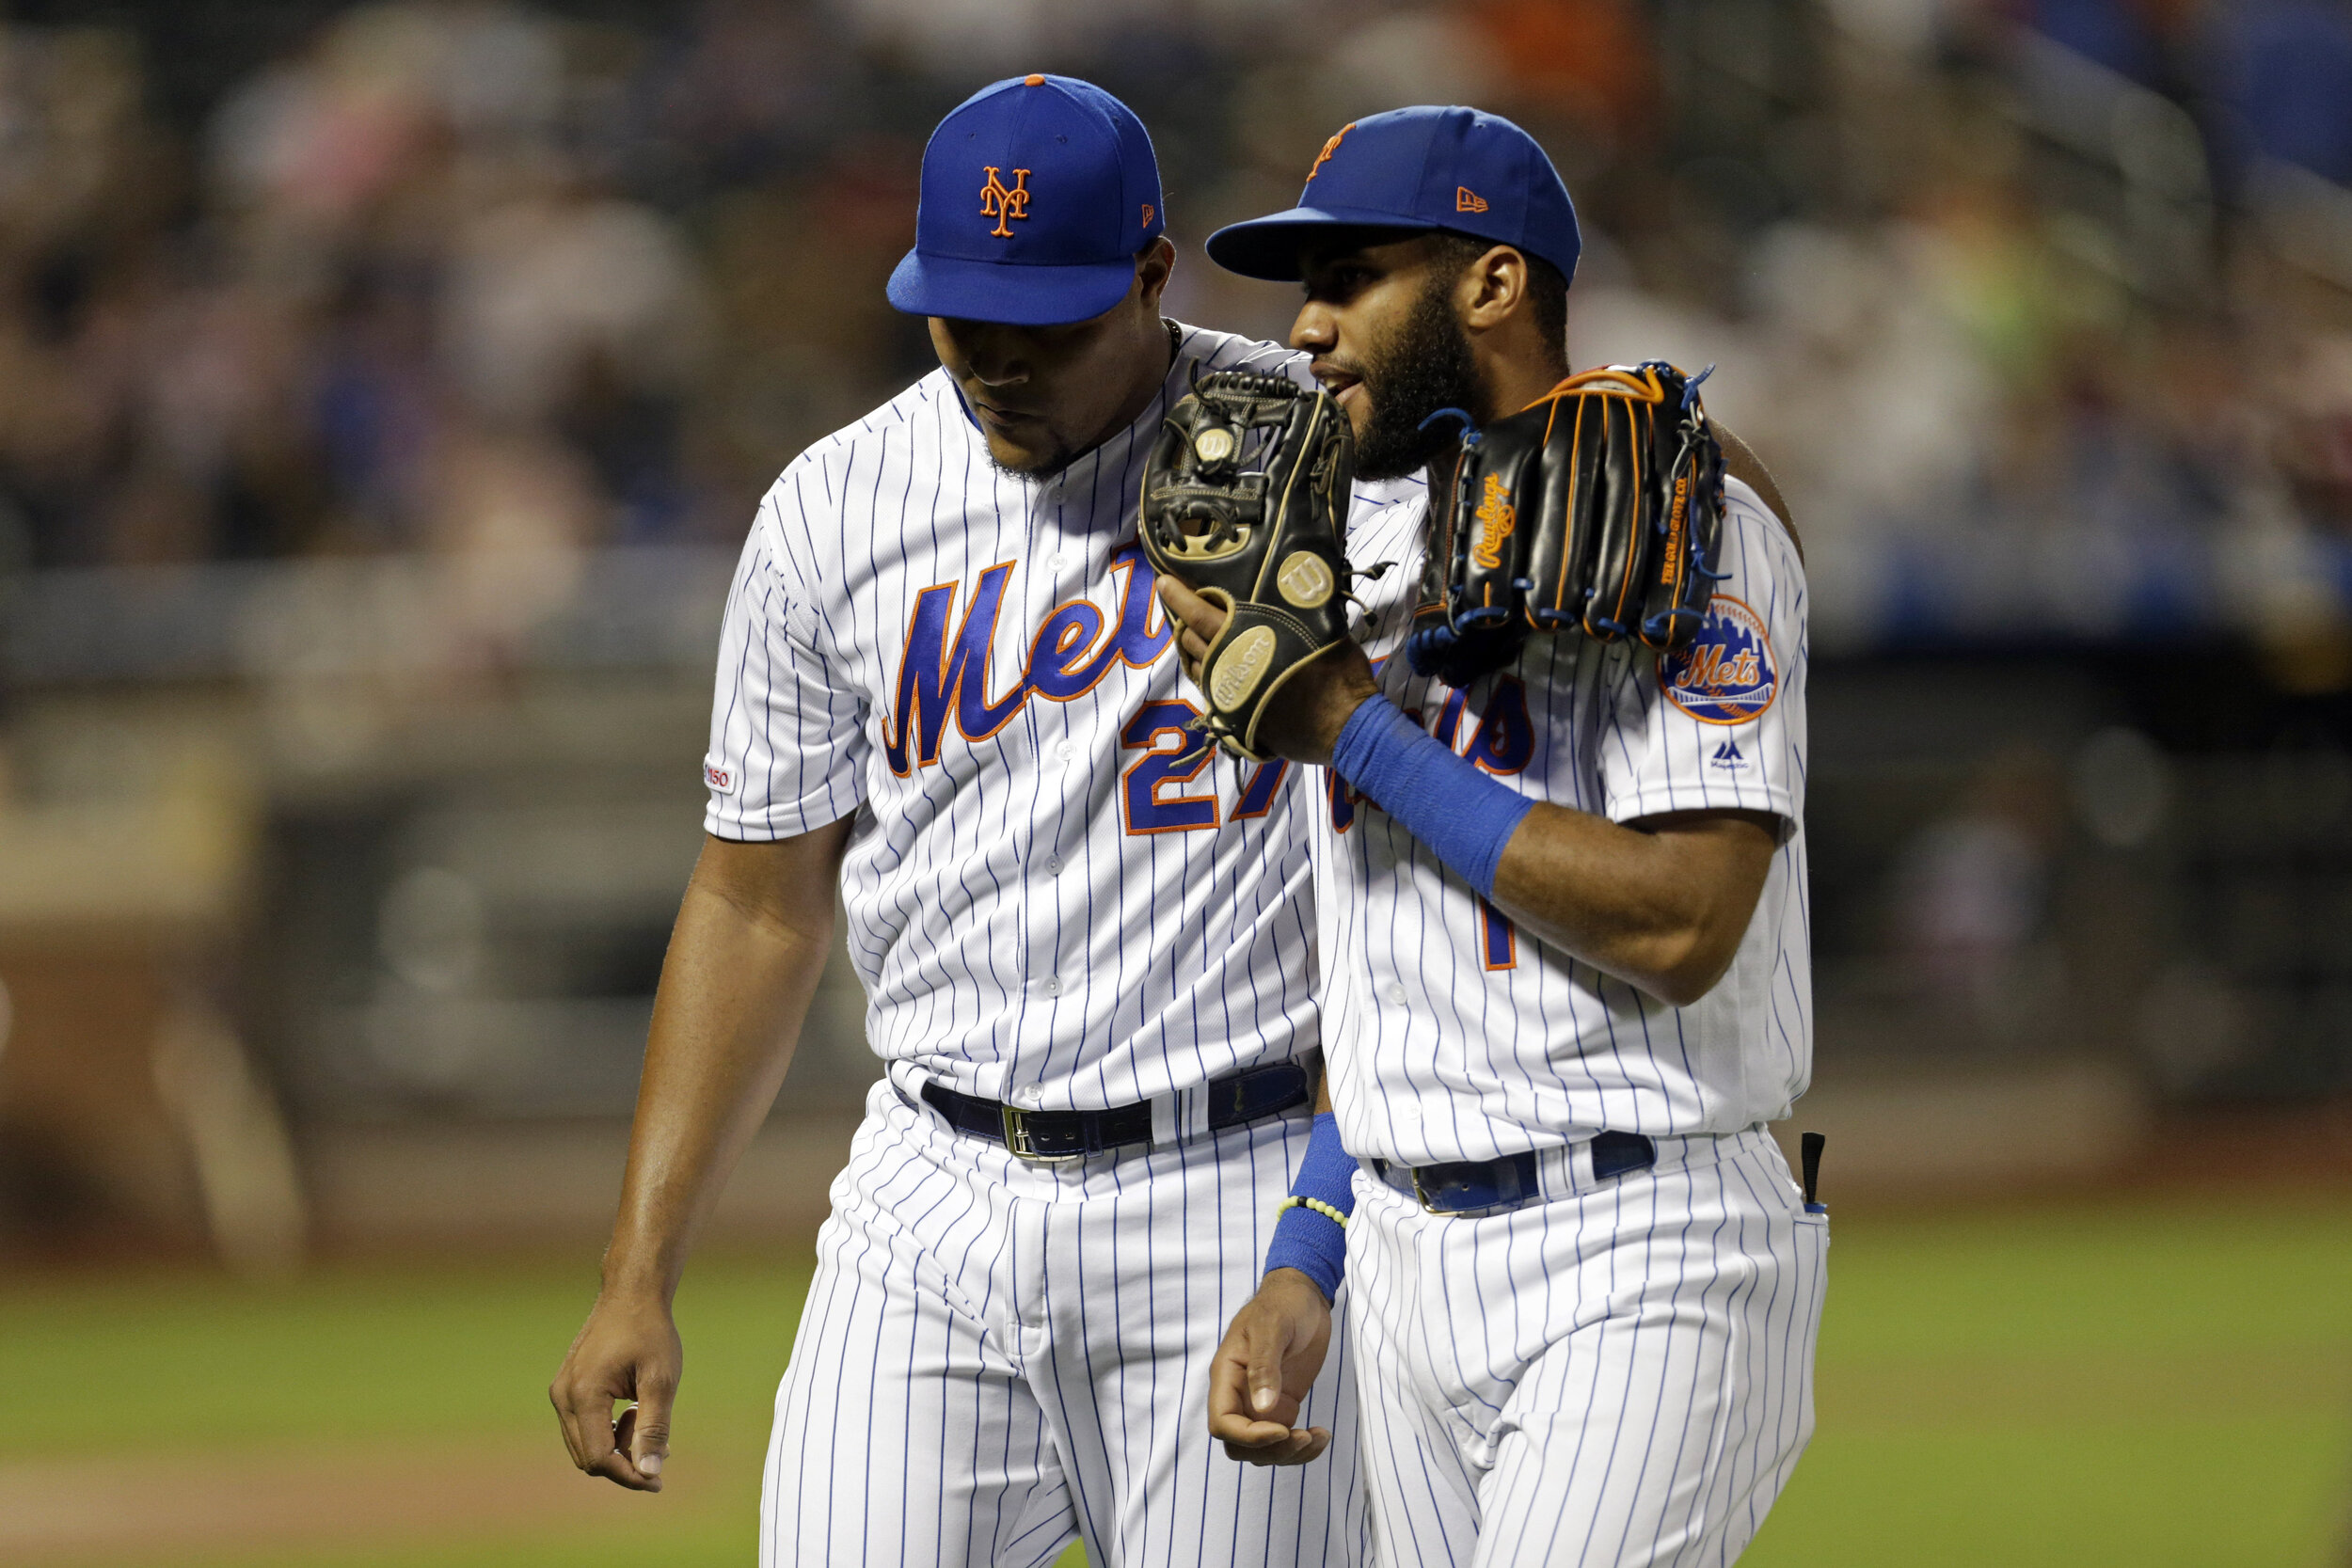 This Mets squad has loads of potential heading into next season. They want to find a manager that can get the most out of that potential the fastest.  Photo from The Associated Press.